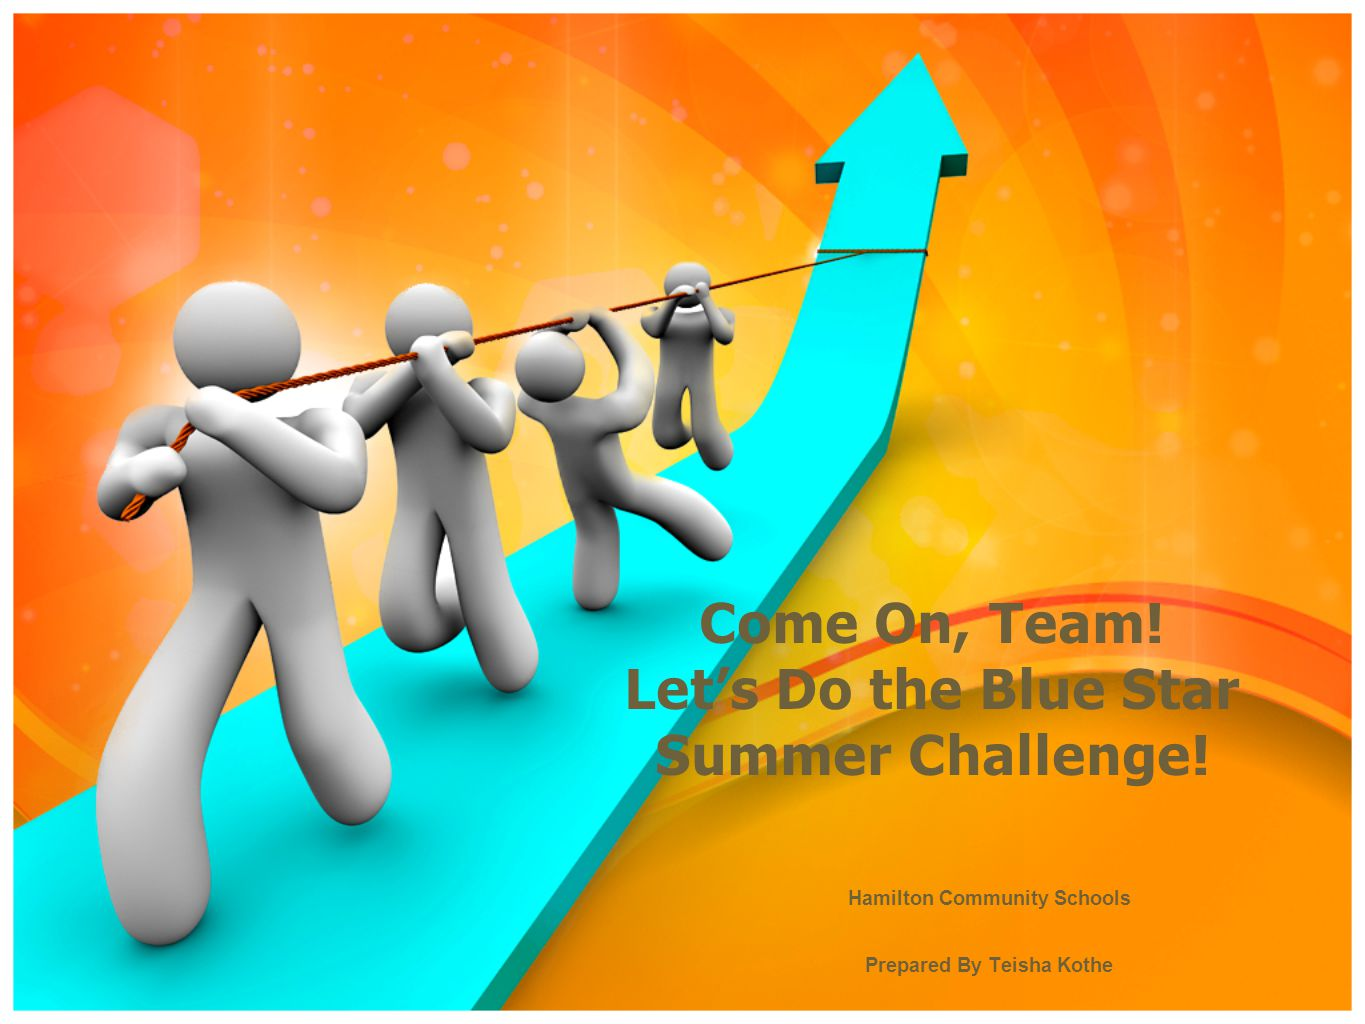 Come On, Team. Let's Do the Blue Star Summer Challenge.